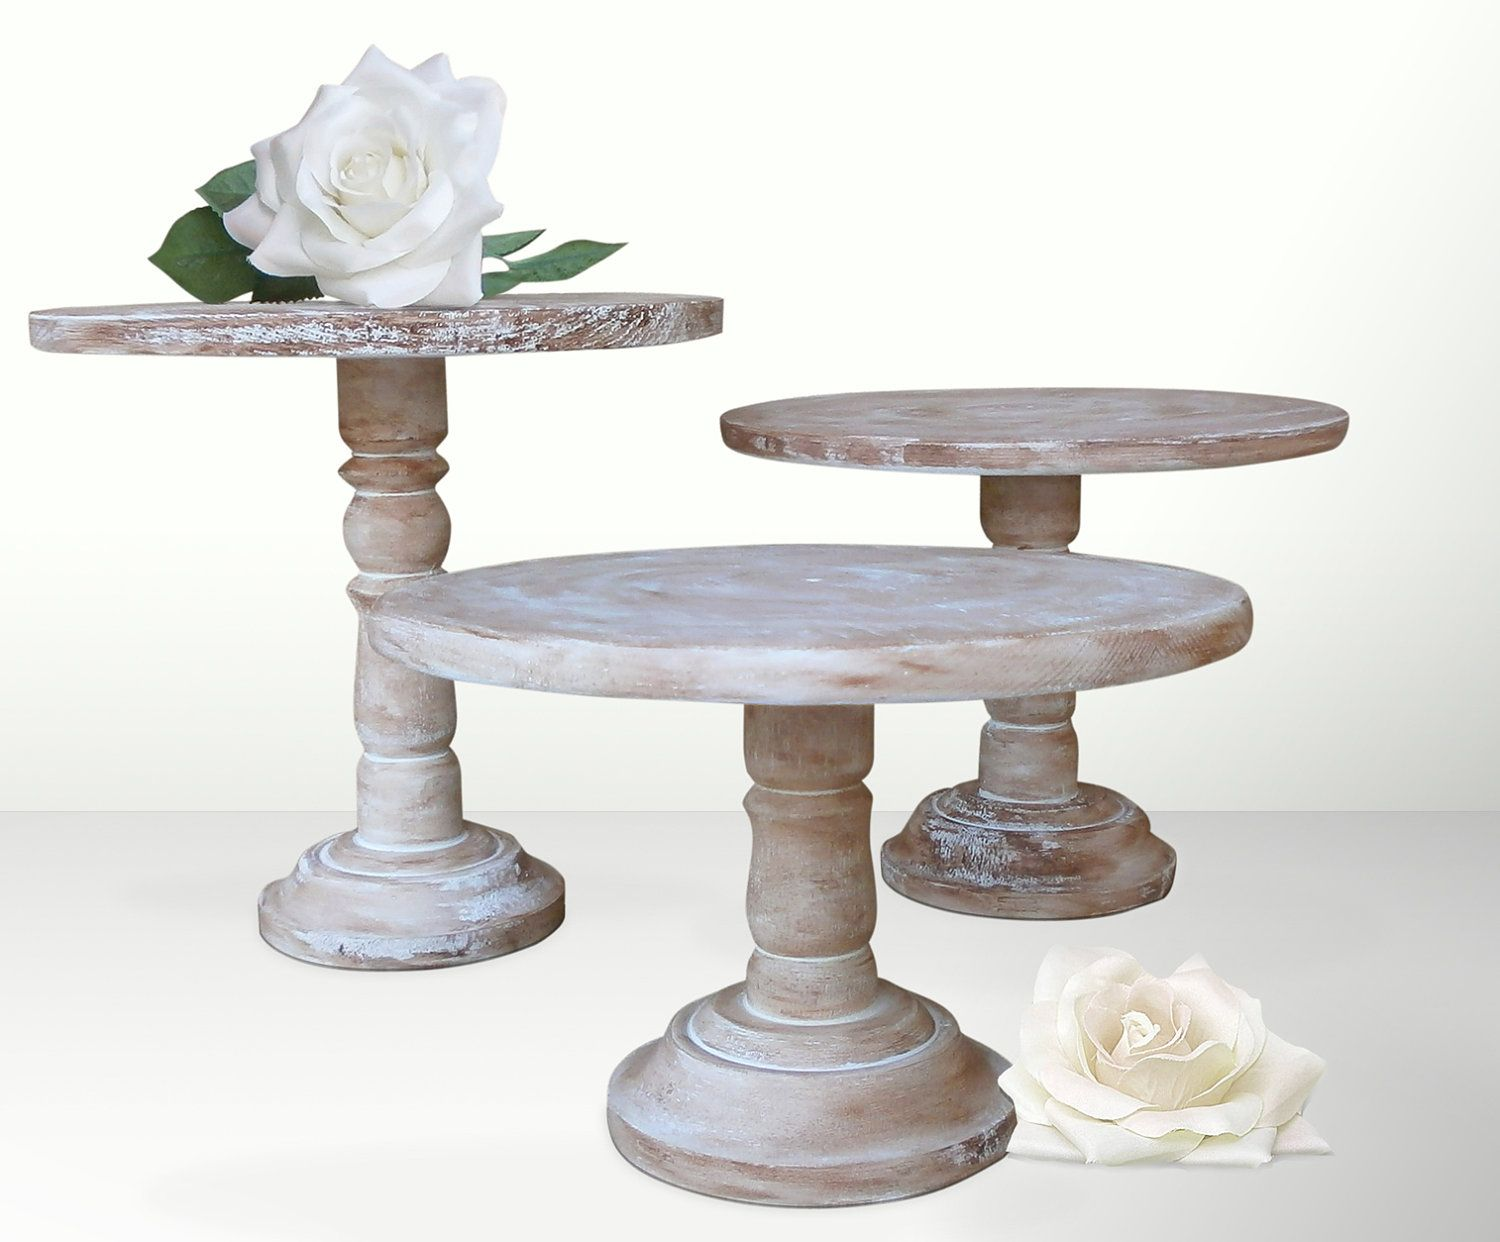 Decorative Cake Stands 1000 Images About Cake Stands On Pinterest Pedestal Gold Cake